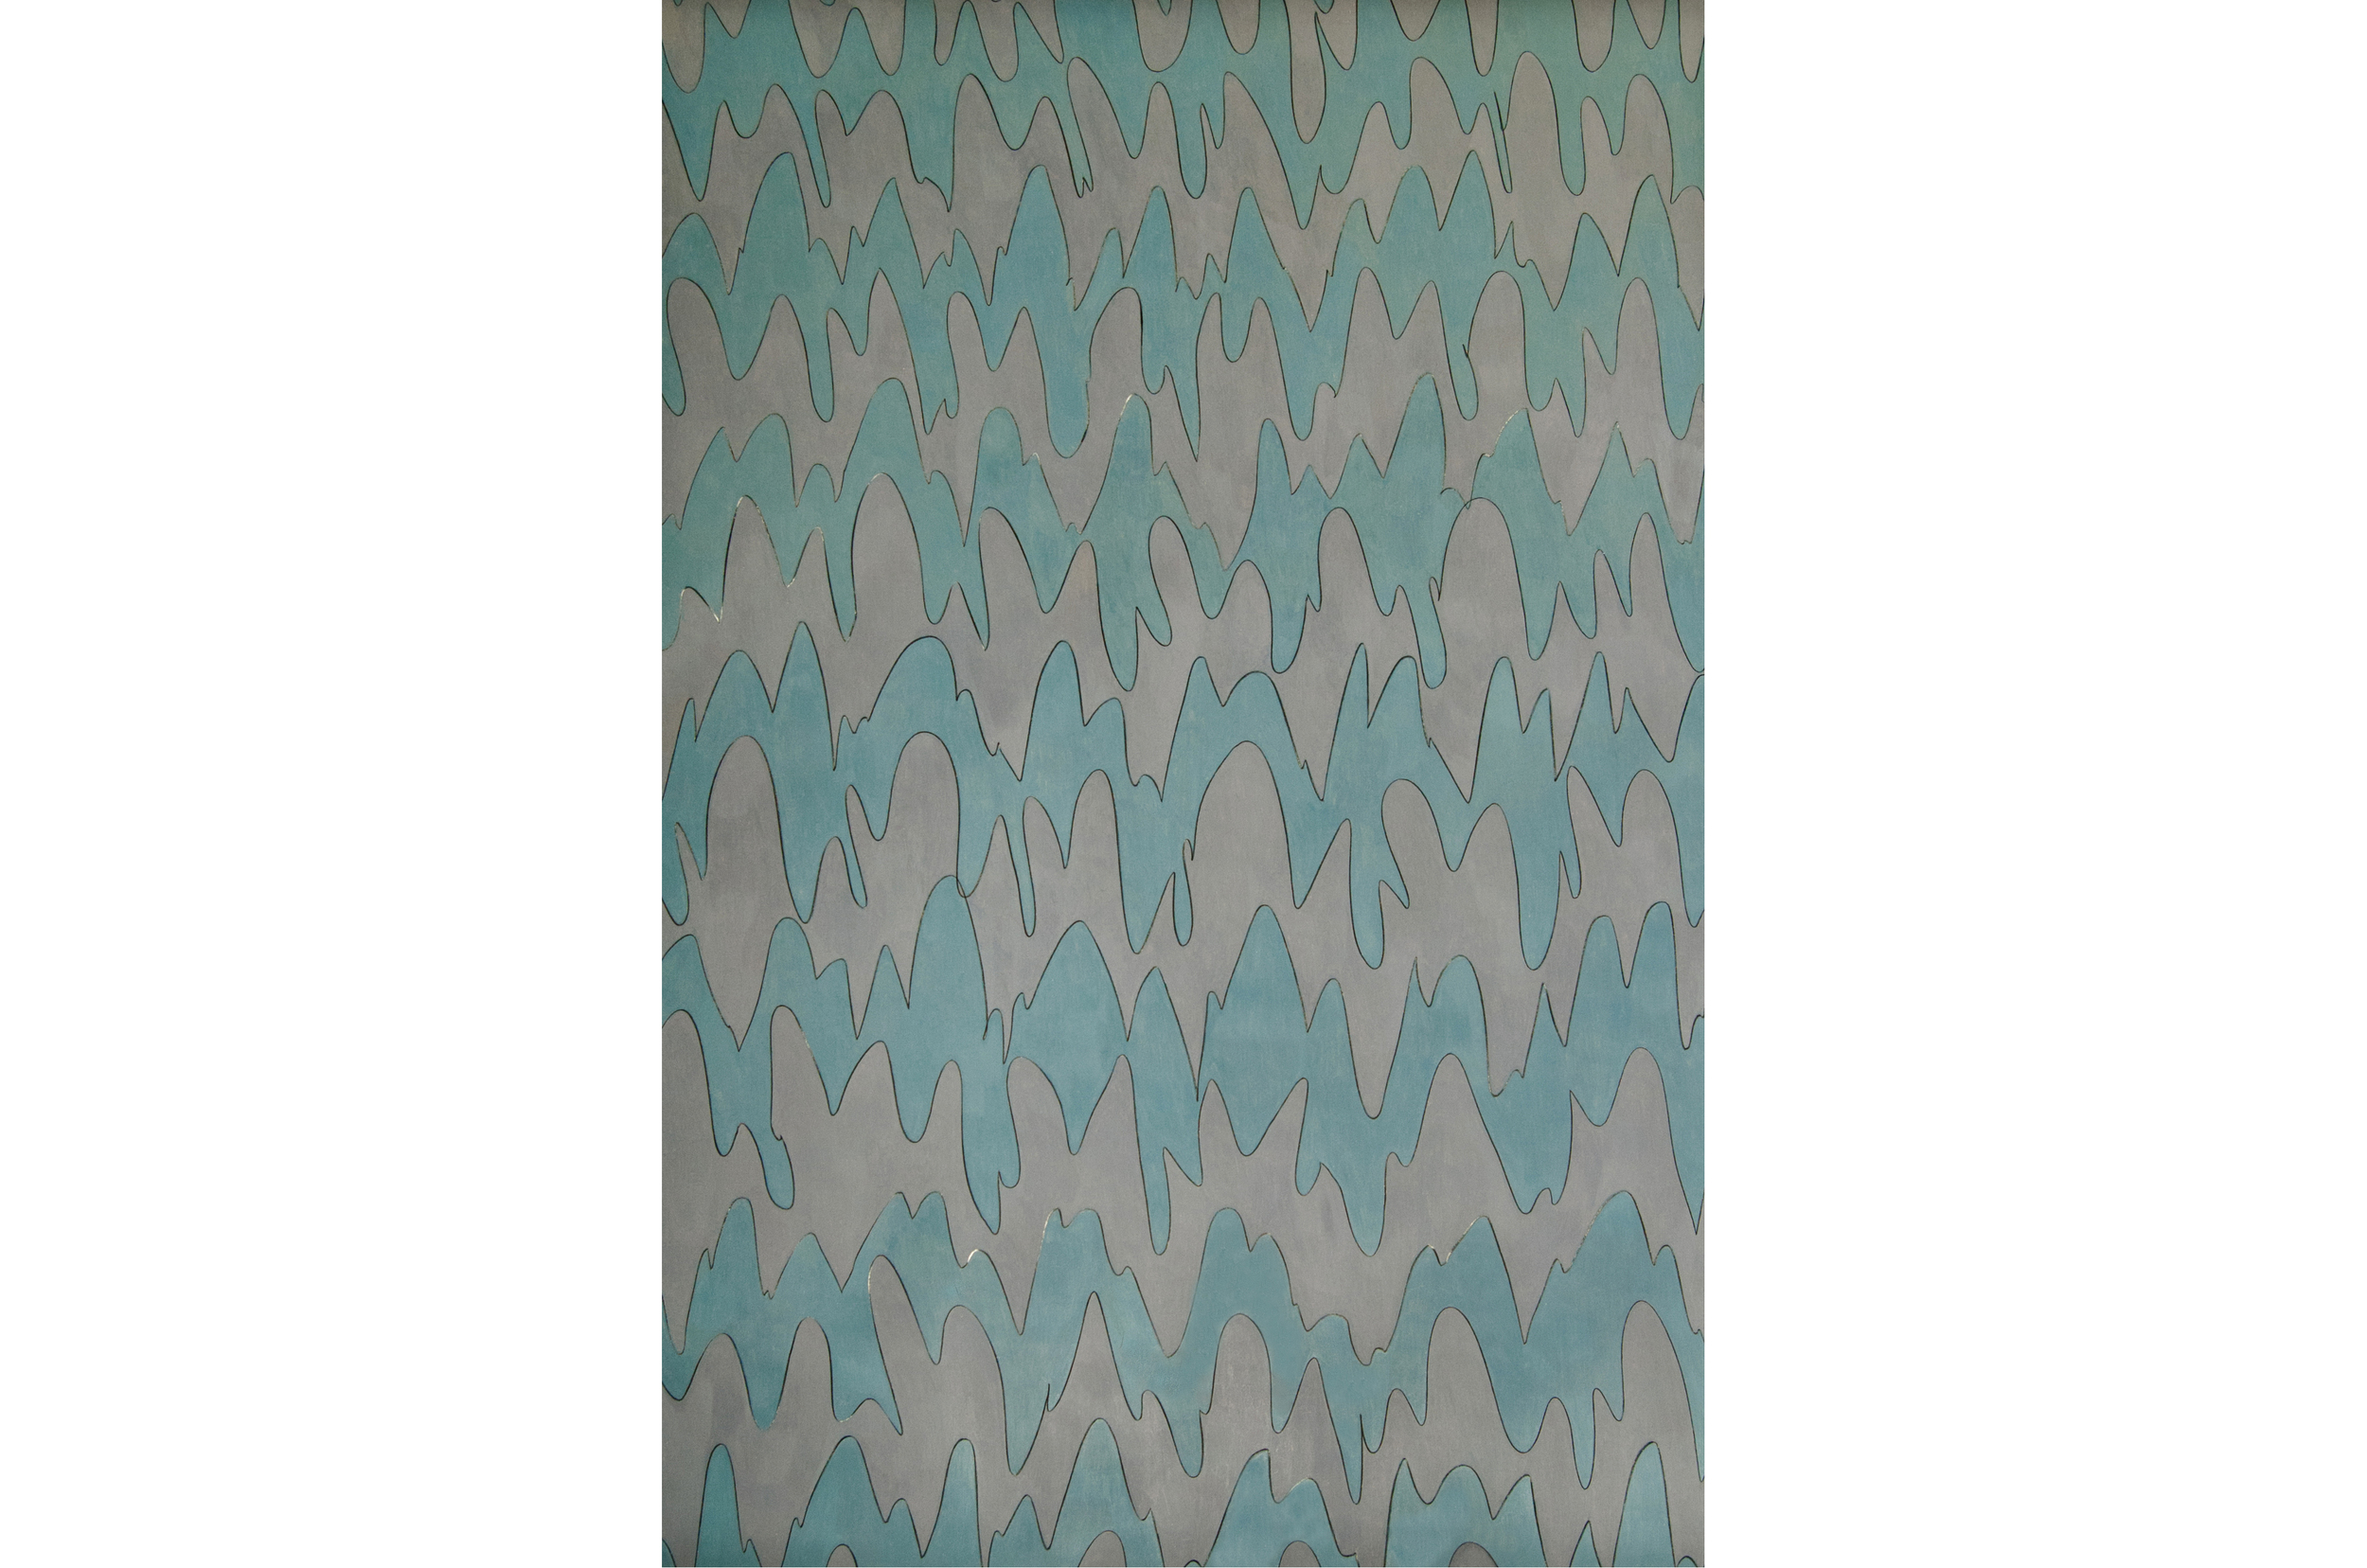 Standing Wave (50% Warm Gray, 70% Cool Gray), 2011, color pencil on paper, 58 x 40 in.